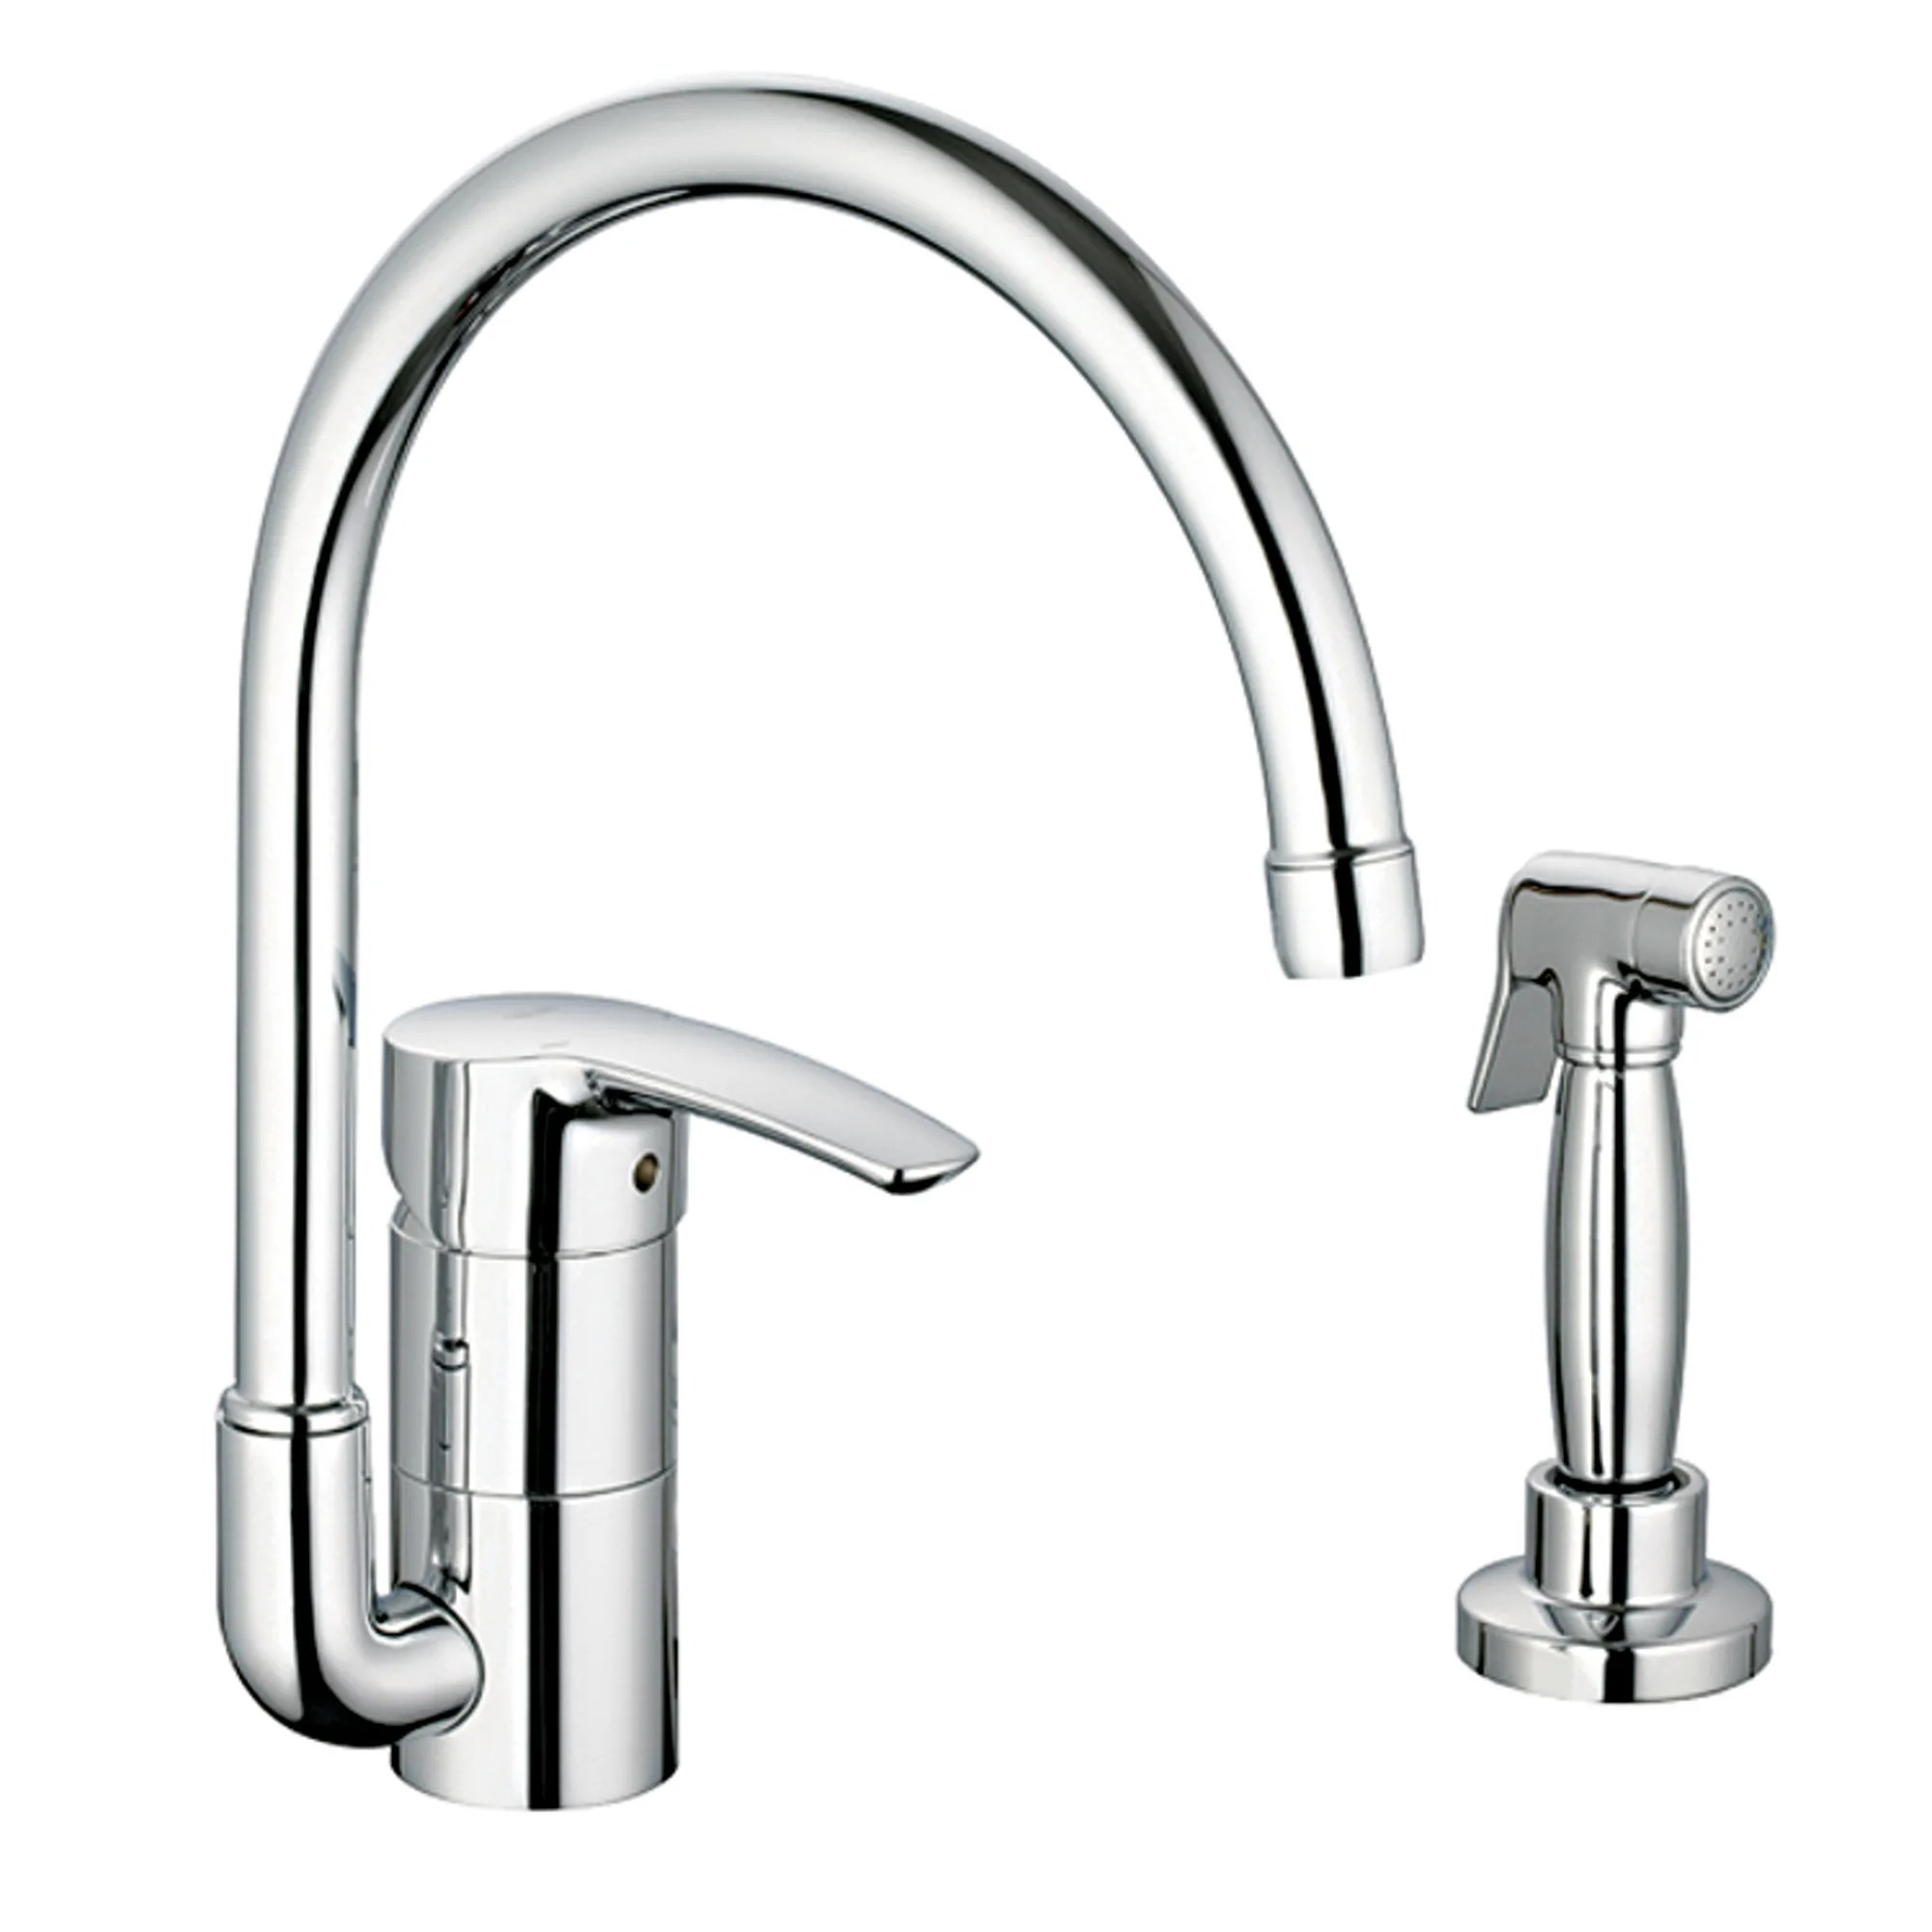 Friedrich Grohe Waschtischarmatur Grohe Feel Perfect Delta Kitchen Faucet Repair Grohe Single Hole